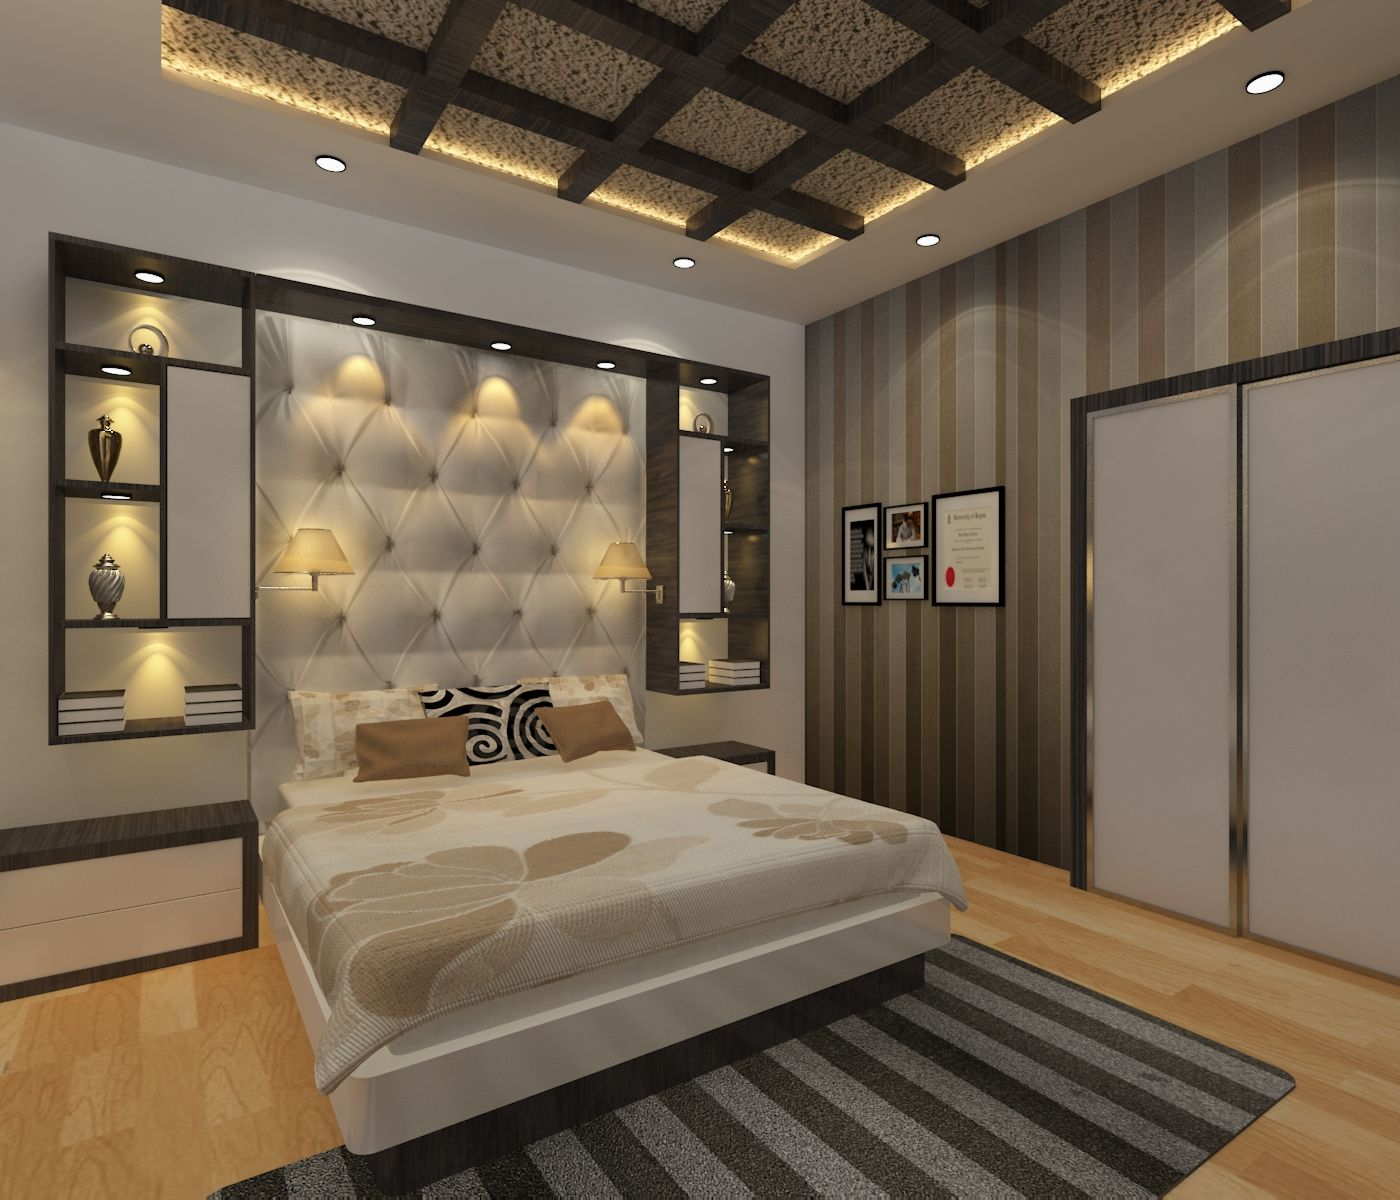 Luxury Bedroom With Elements Bed Cover Ceiling Lights How To Install Light Fixtures Connecting Fixture Wires Wiring Colour Cupboard Accessories Hardware Fittings Etc